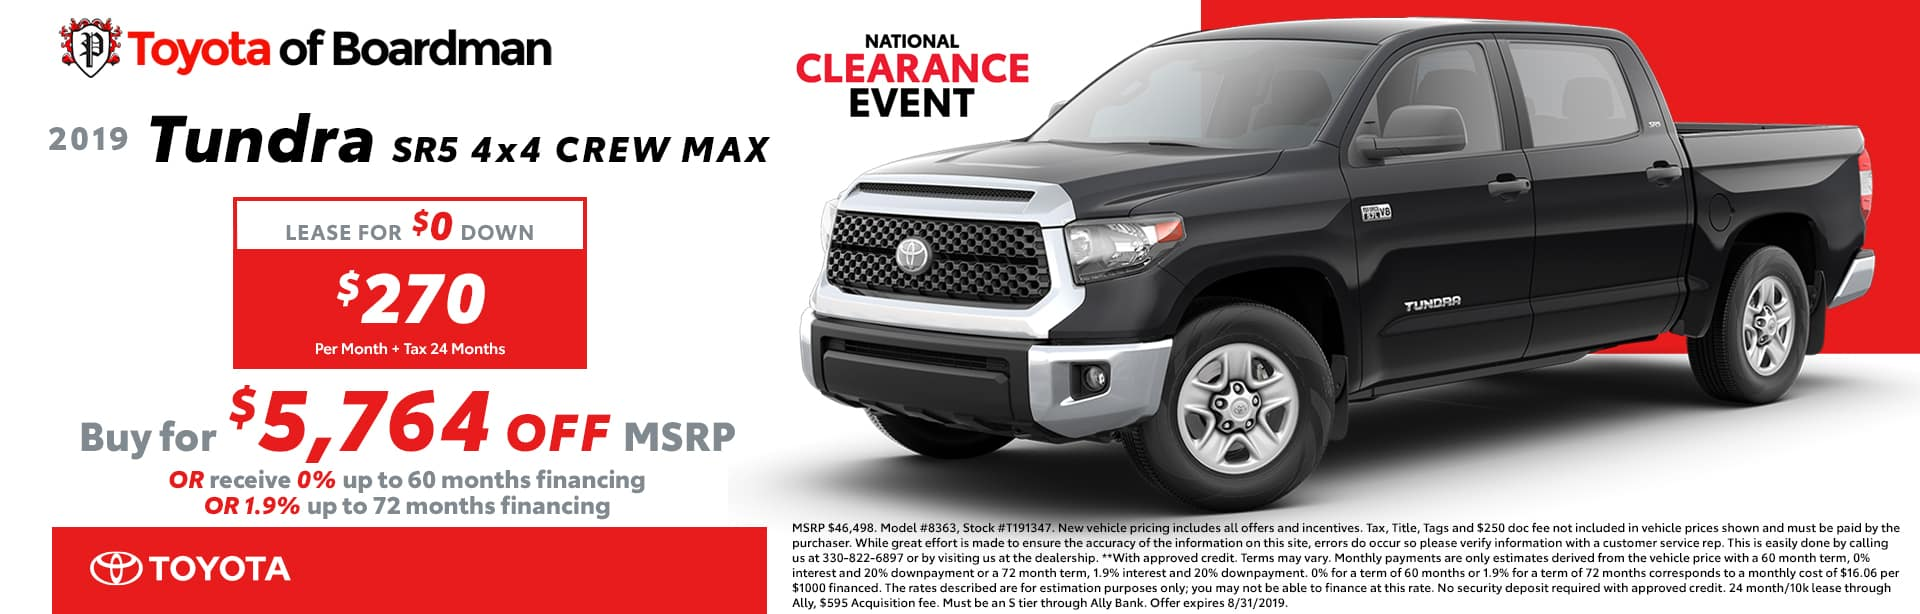 August special on the 2019 Tundra